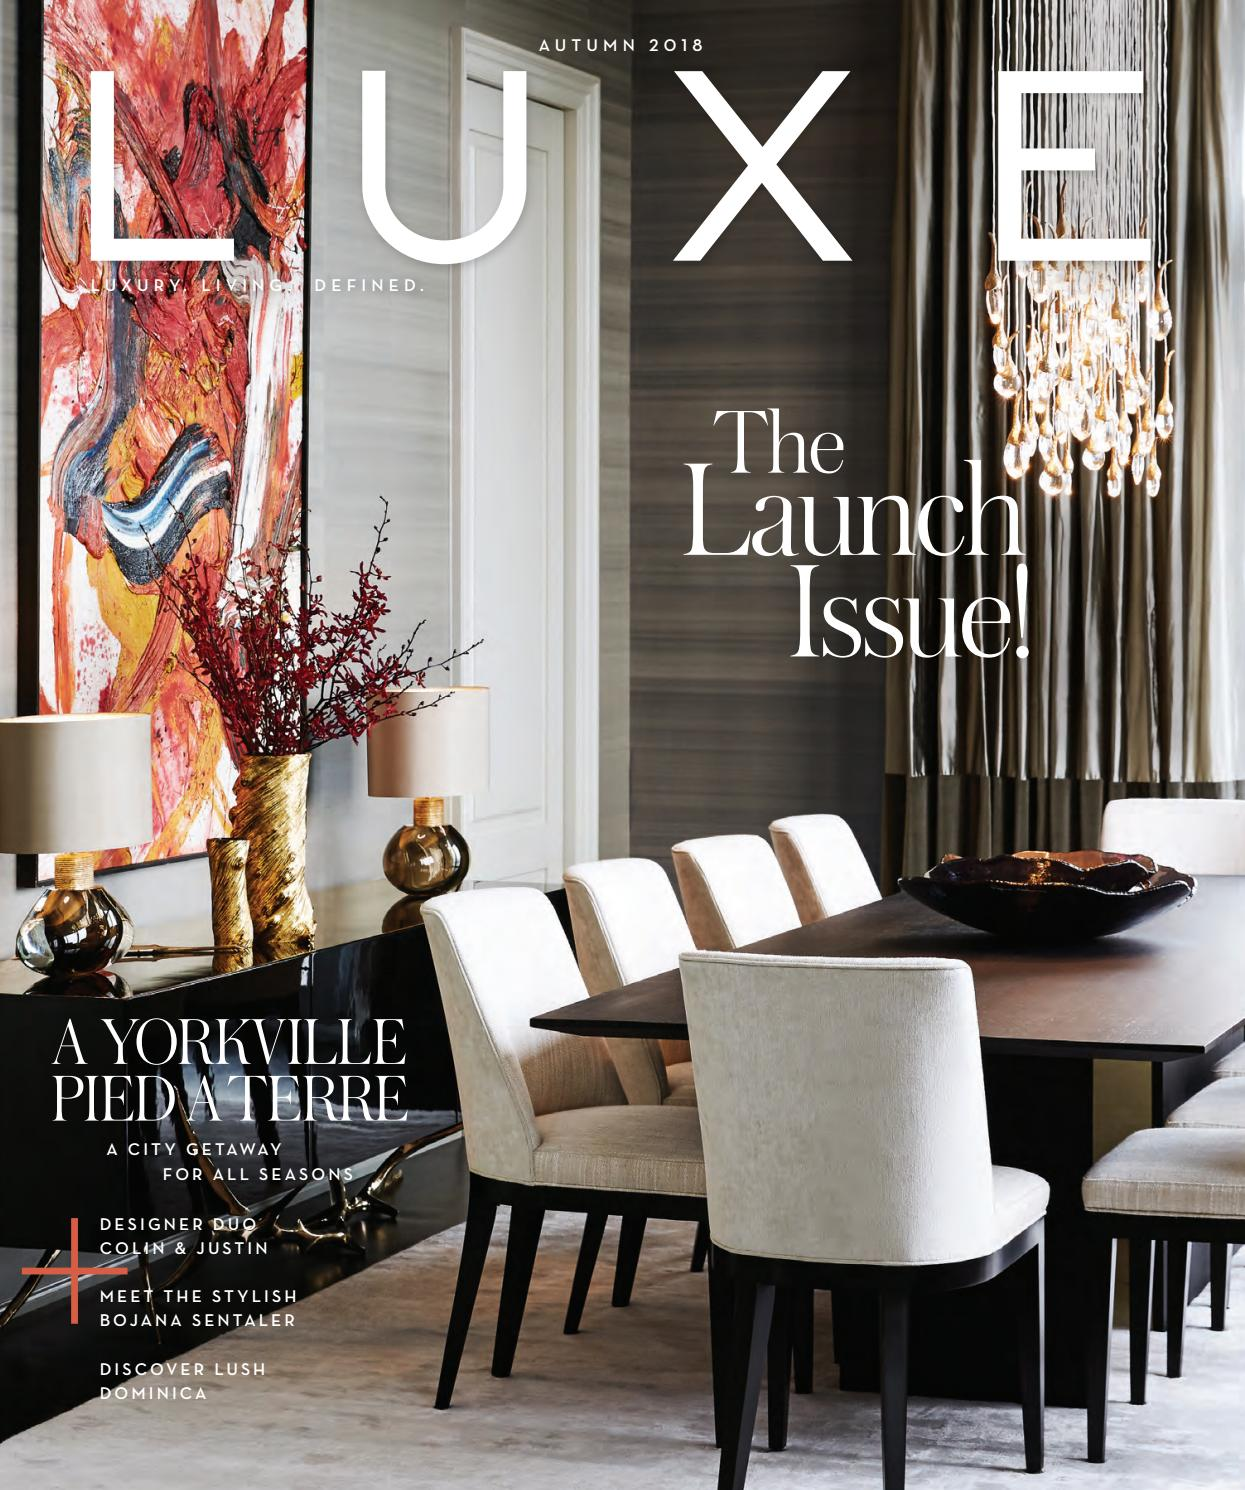 justin timberlake turns interior designer to launch new where can interior designers work LUXE Magazine Canada Autumn 2018 by LUXE Magazine Canada - issuu